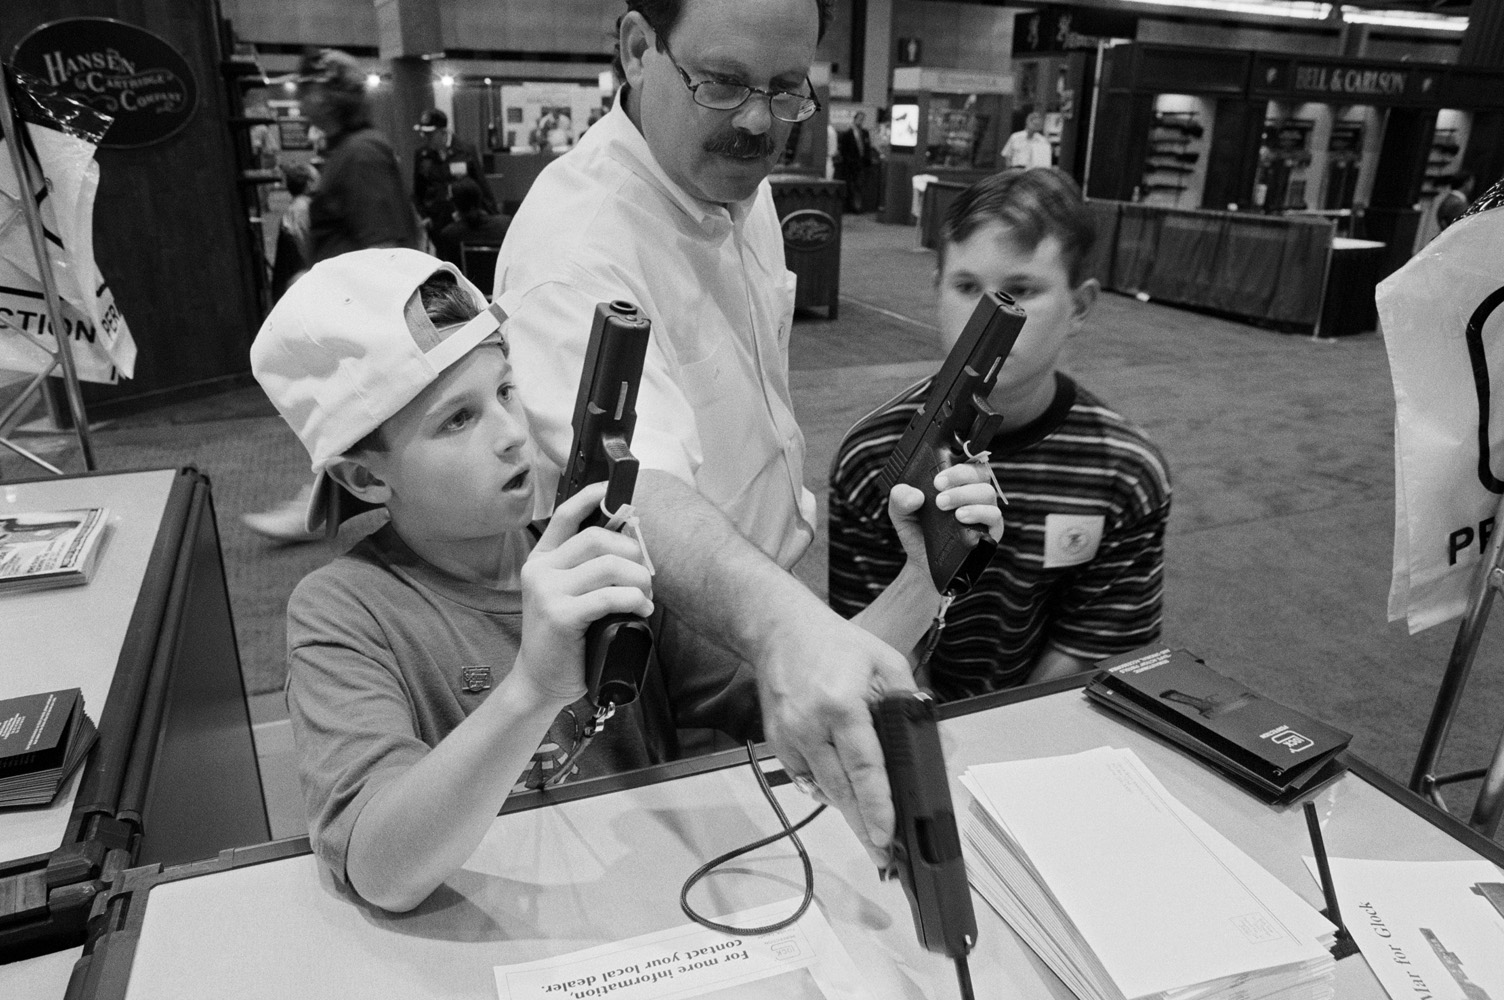 Jack Cone, 45, with sons Andrew, 10, and Tanner, 12, at the National Rifle Association (NRA) annual convention and gun show in Dallas.  Tanner first fired a gun aged 3. He now owns a 243 Ruger rifle, a Remington 58 and a 20-guage automatic shotgun. Andrew has a Browning Rifle, a Remington pump-action shotgun and a Swedish military rifle. I've got about 50 guns. The real problem is the minorities who have guns—they cause the problems.